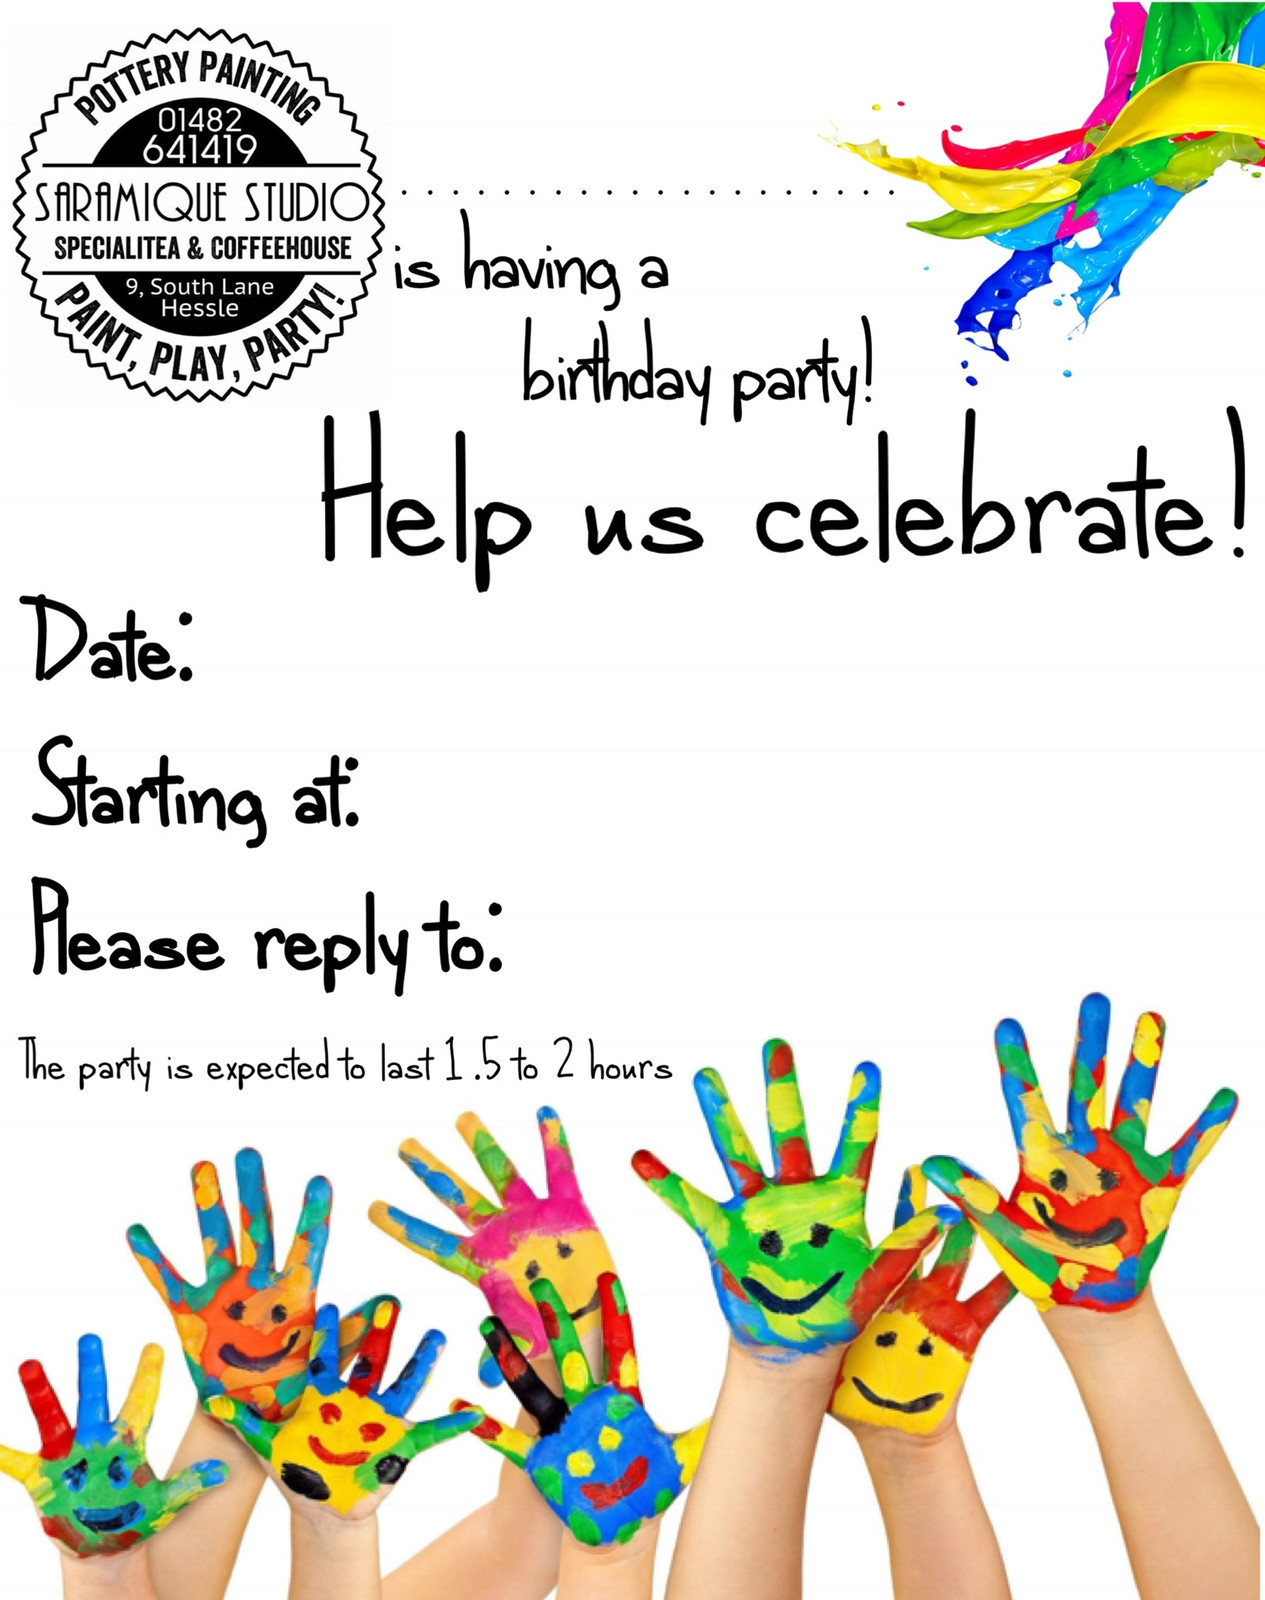 Saramique Studio | Pottery painting Hull | Children\'s parties